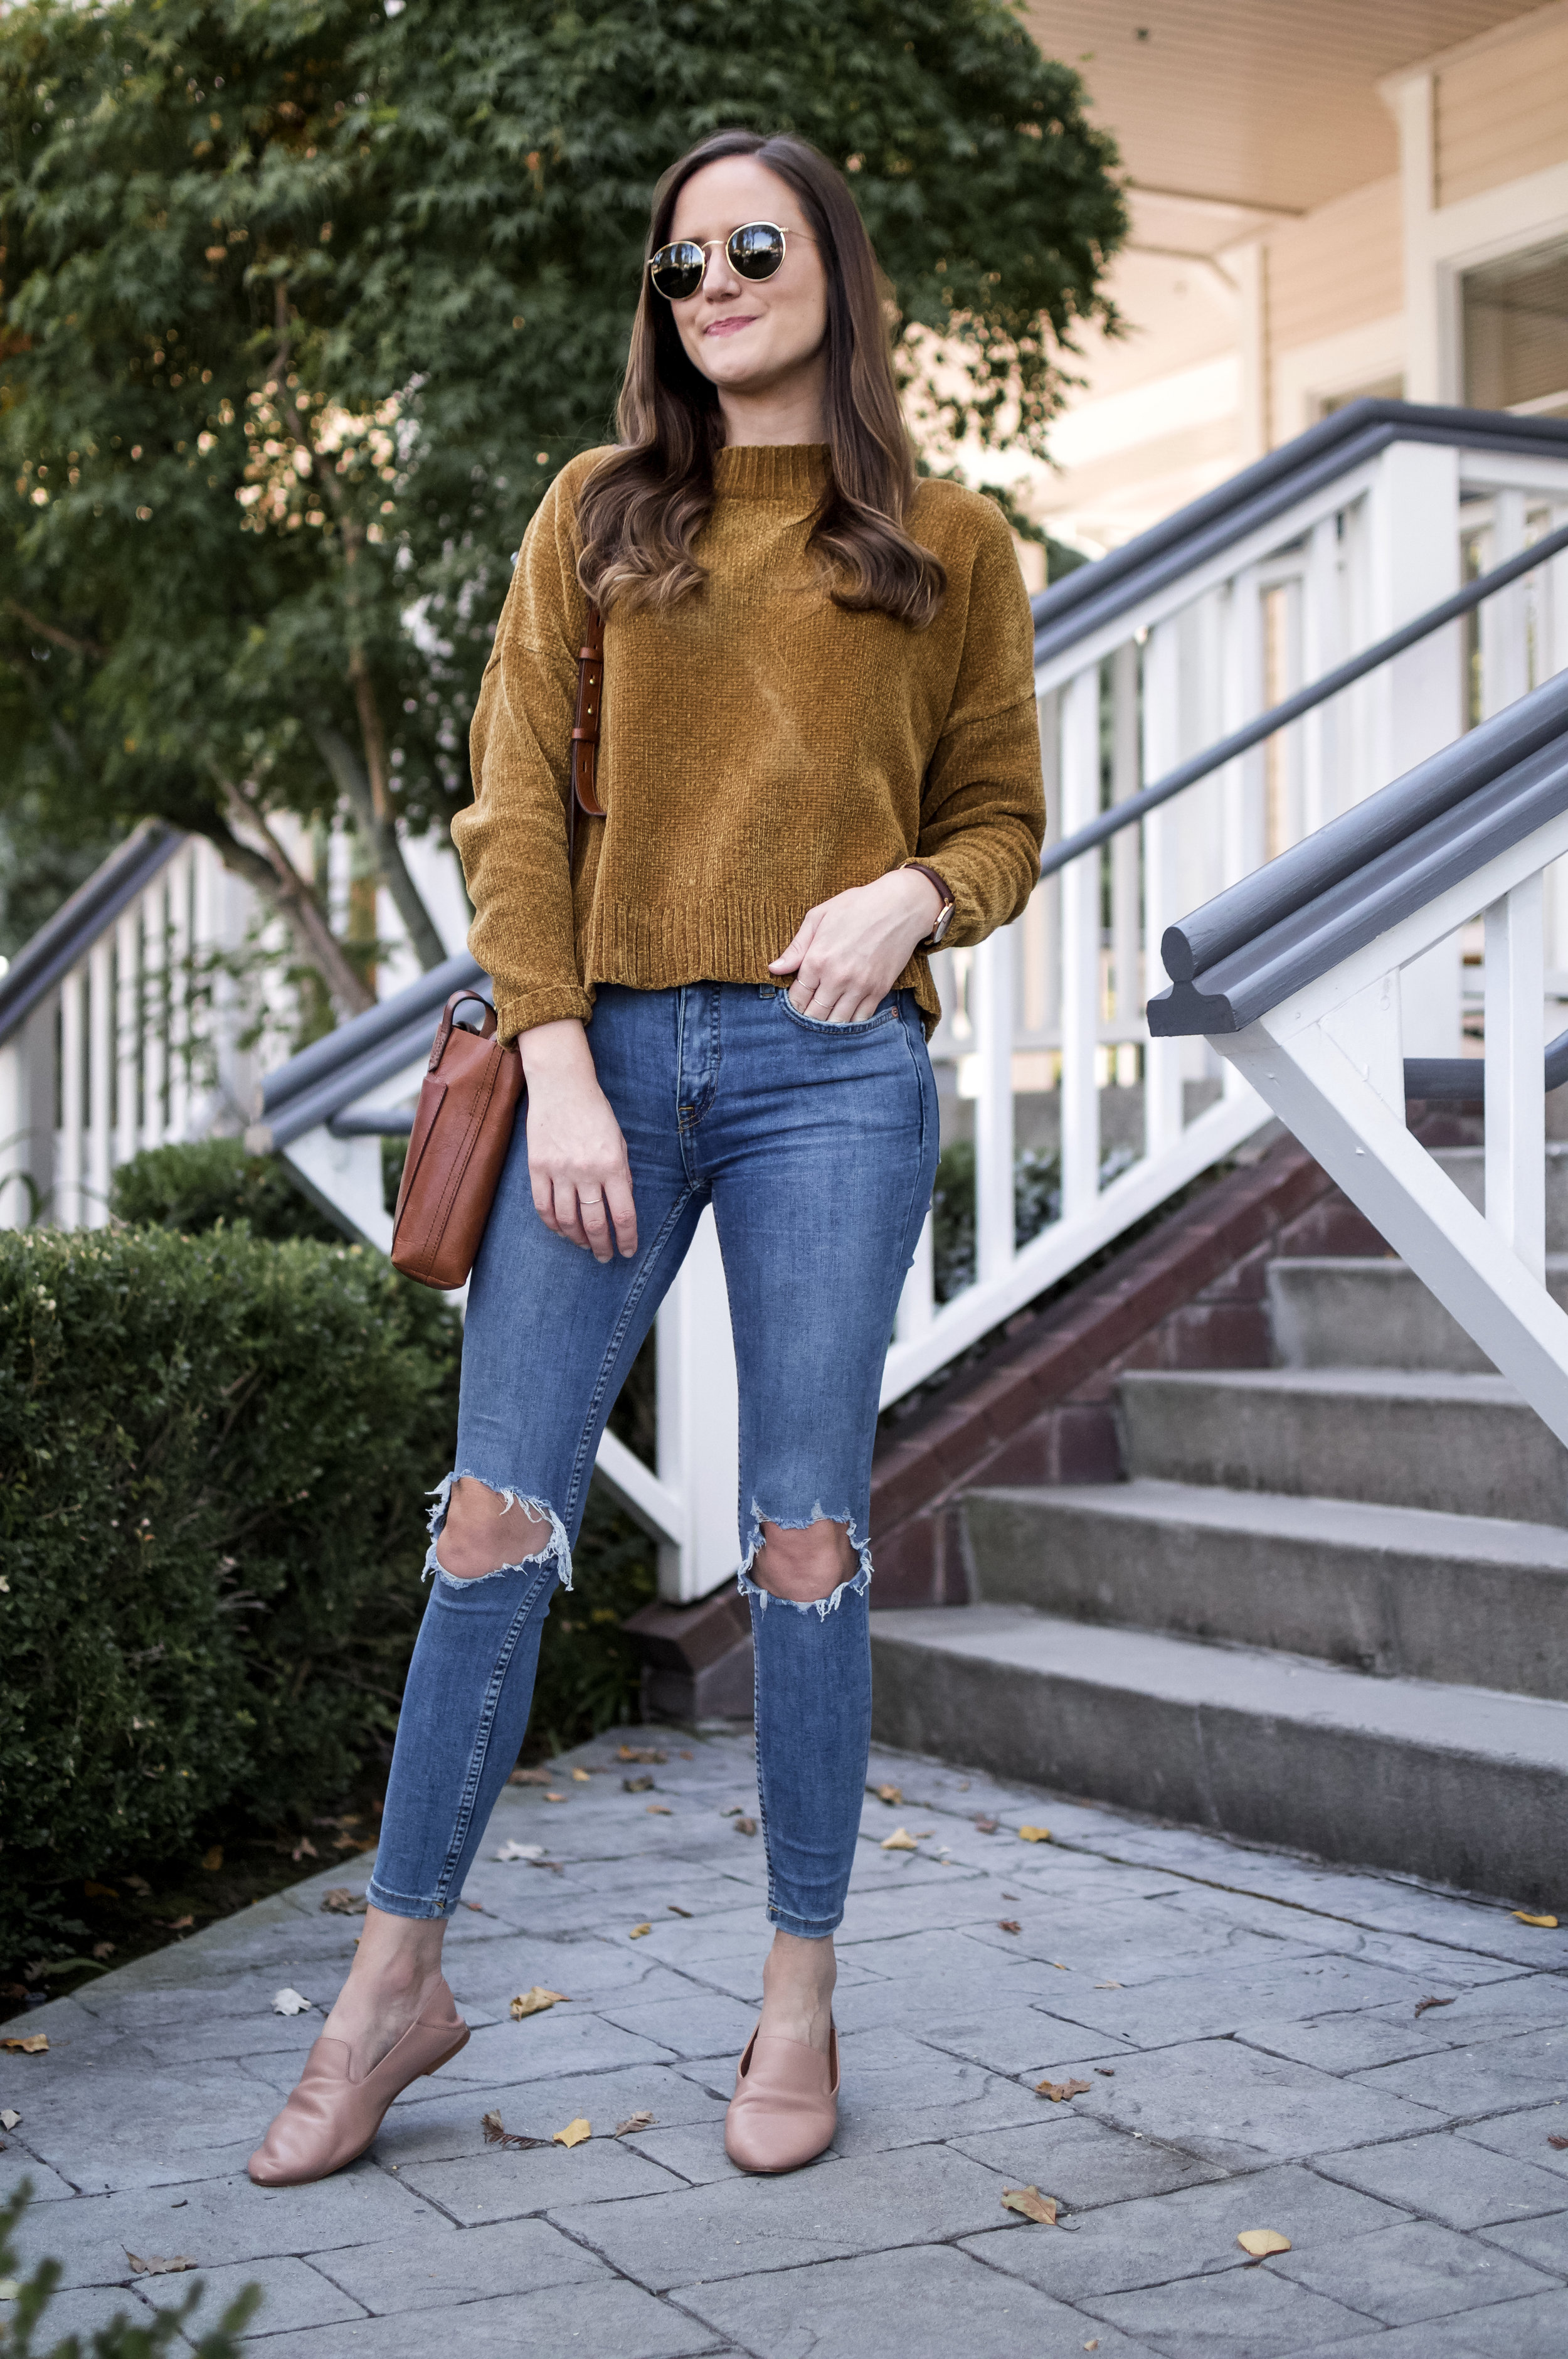 Shop the Look Below.  Nordstrom BP. Sweater  |  Free People Jeans  |  Halogen Flats  |  Madewell Tote |  Ray-Ban Sunglasses